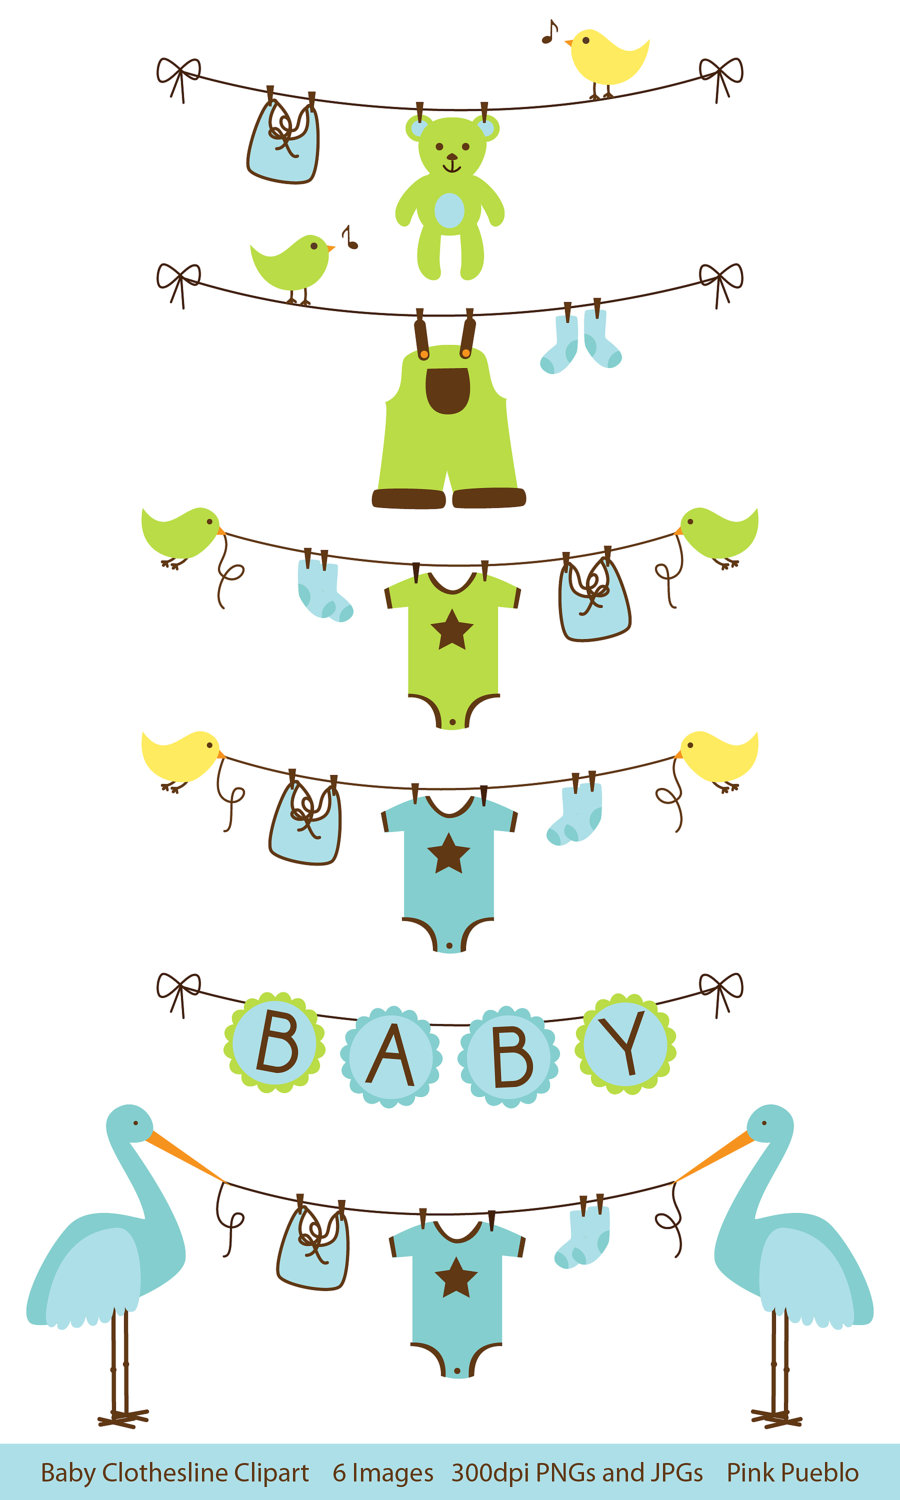 Clip Art Baby Shower Backgrounds For Inv-Clip Art Baby Shower Backgrounds For Invitations Boy Baby Shower-7